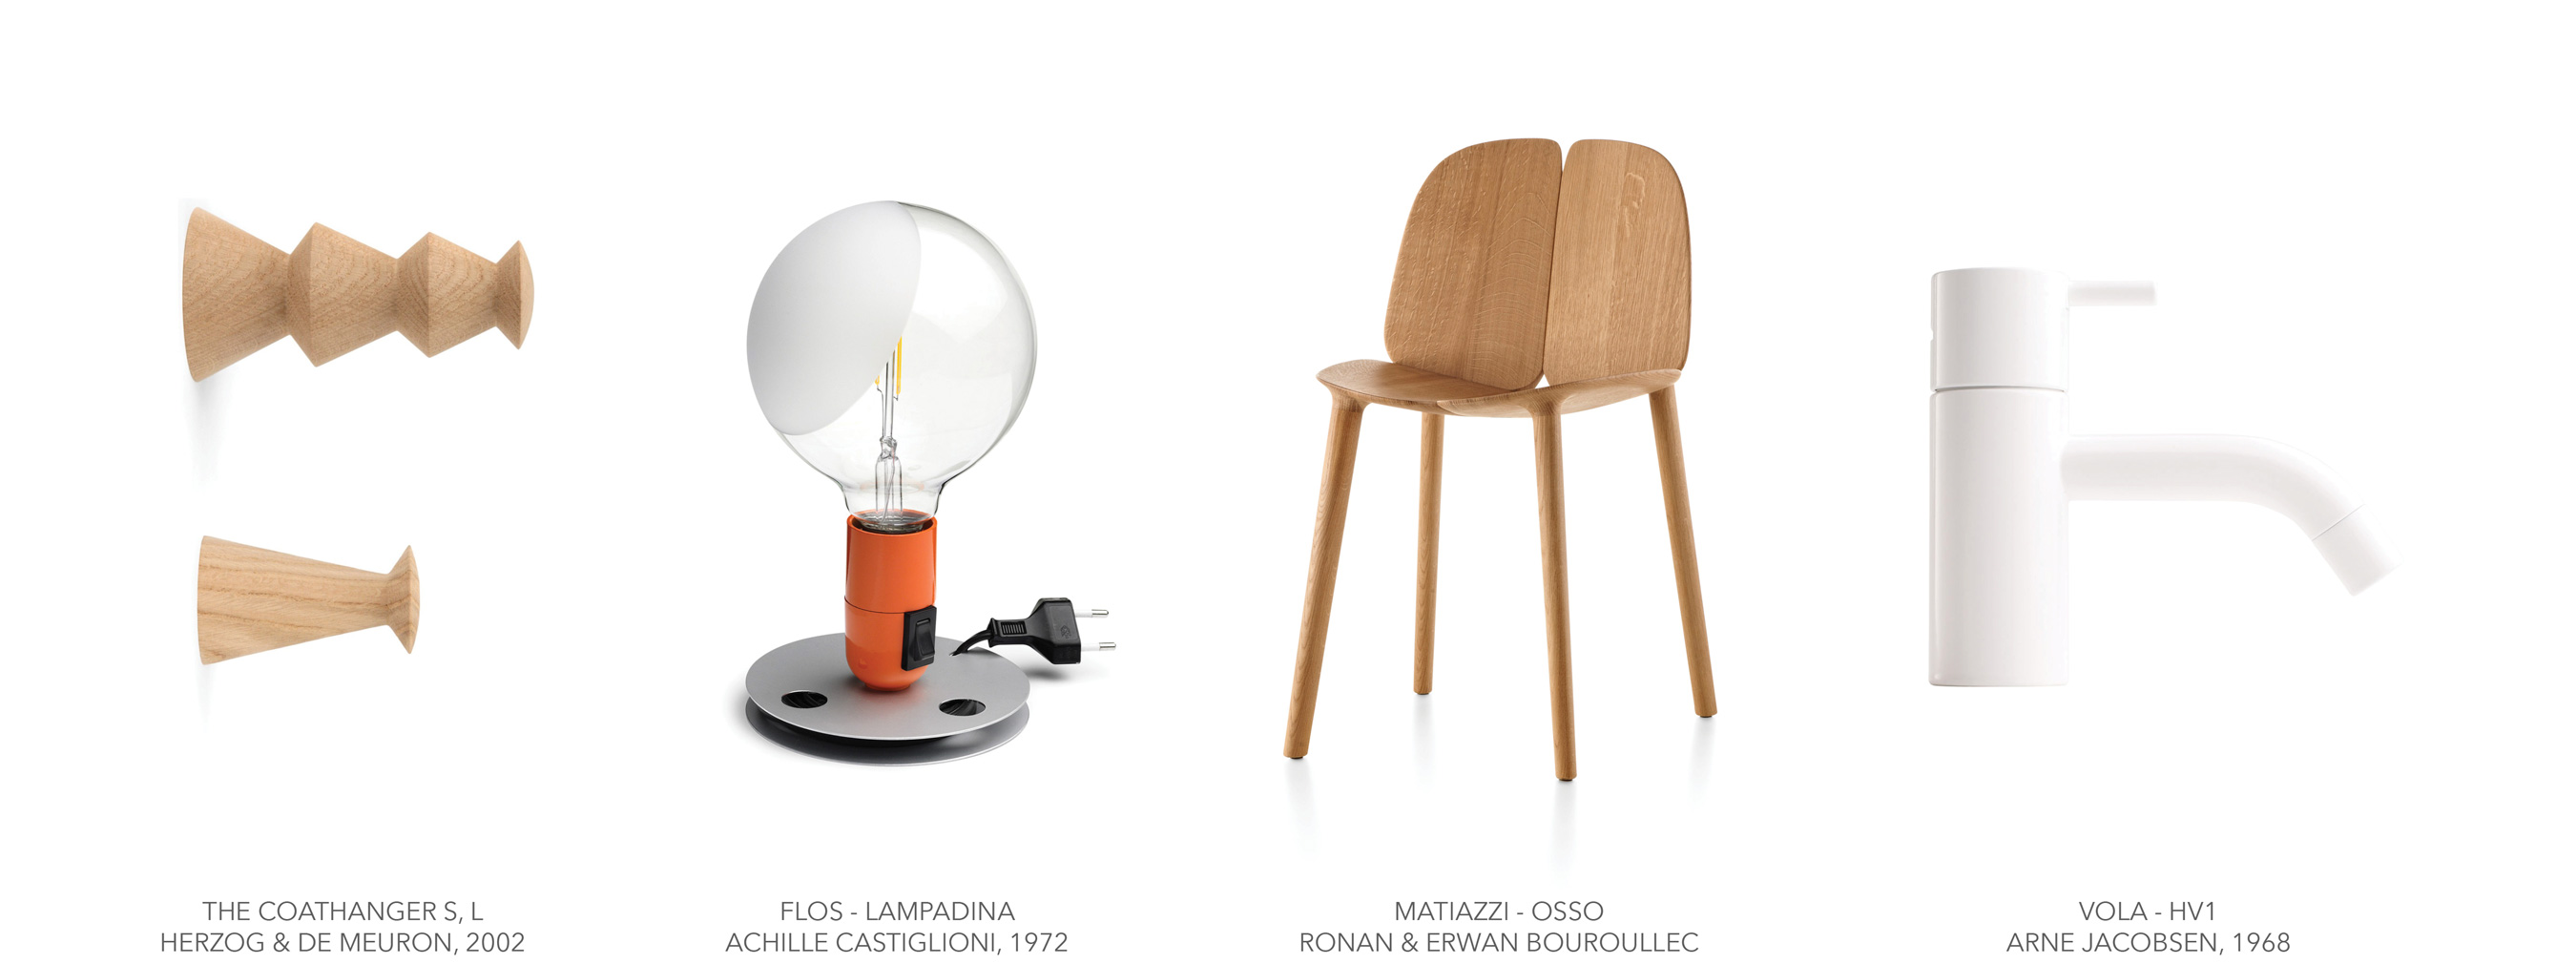 press images : proposed Furniture & appliances